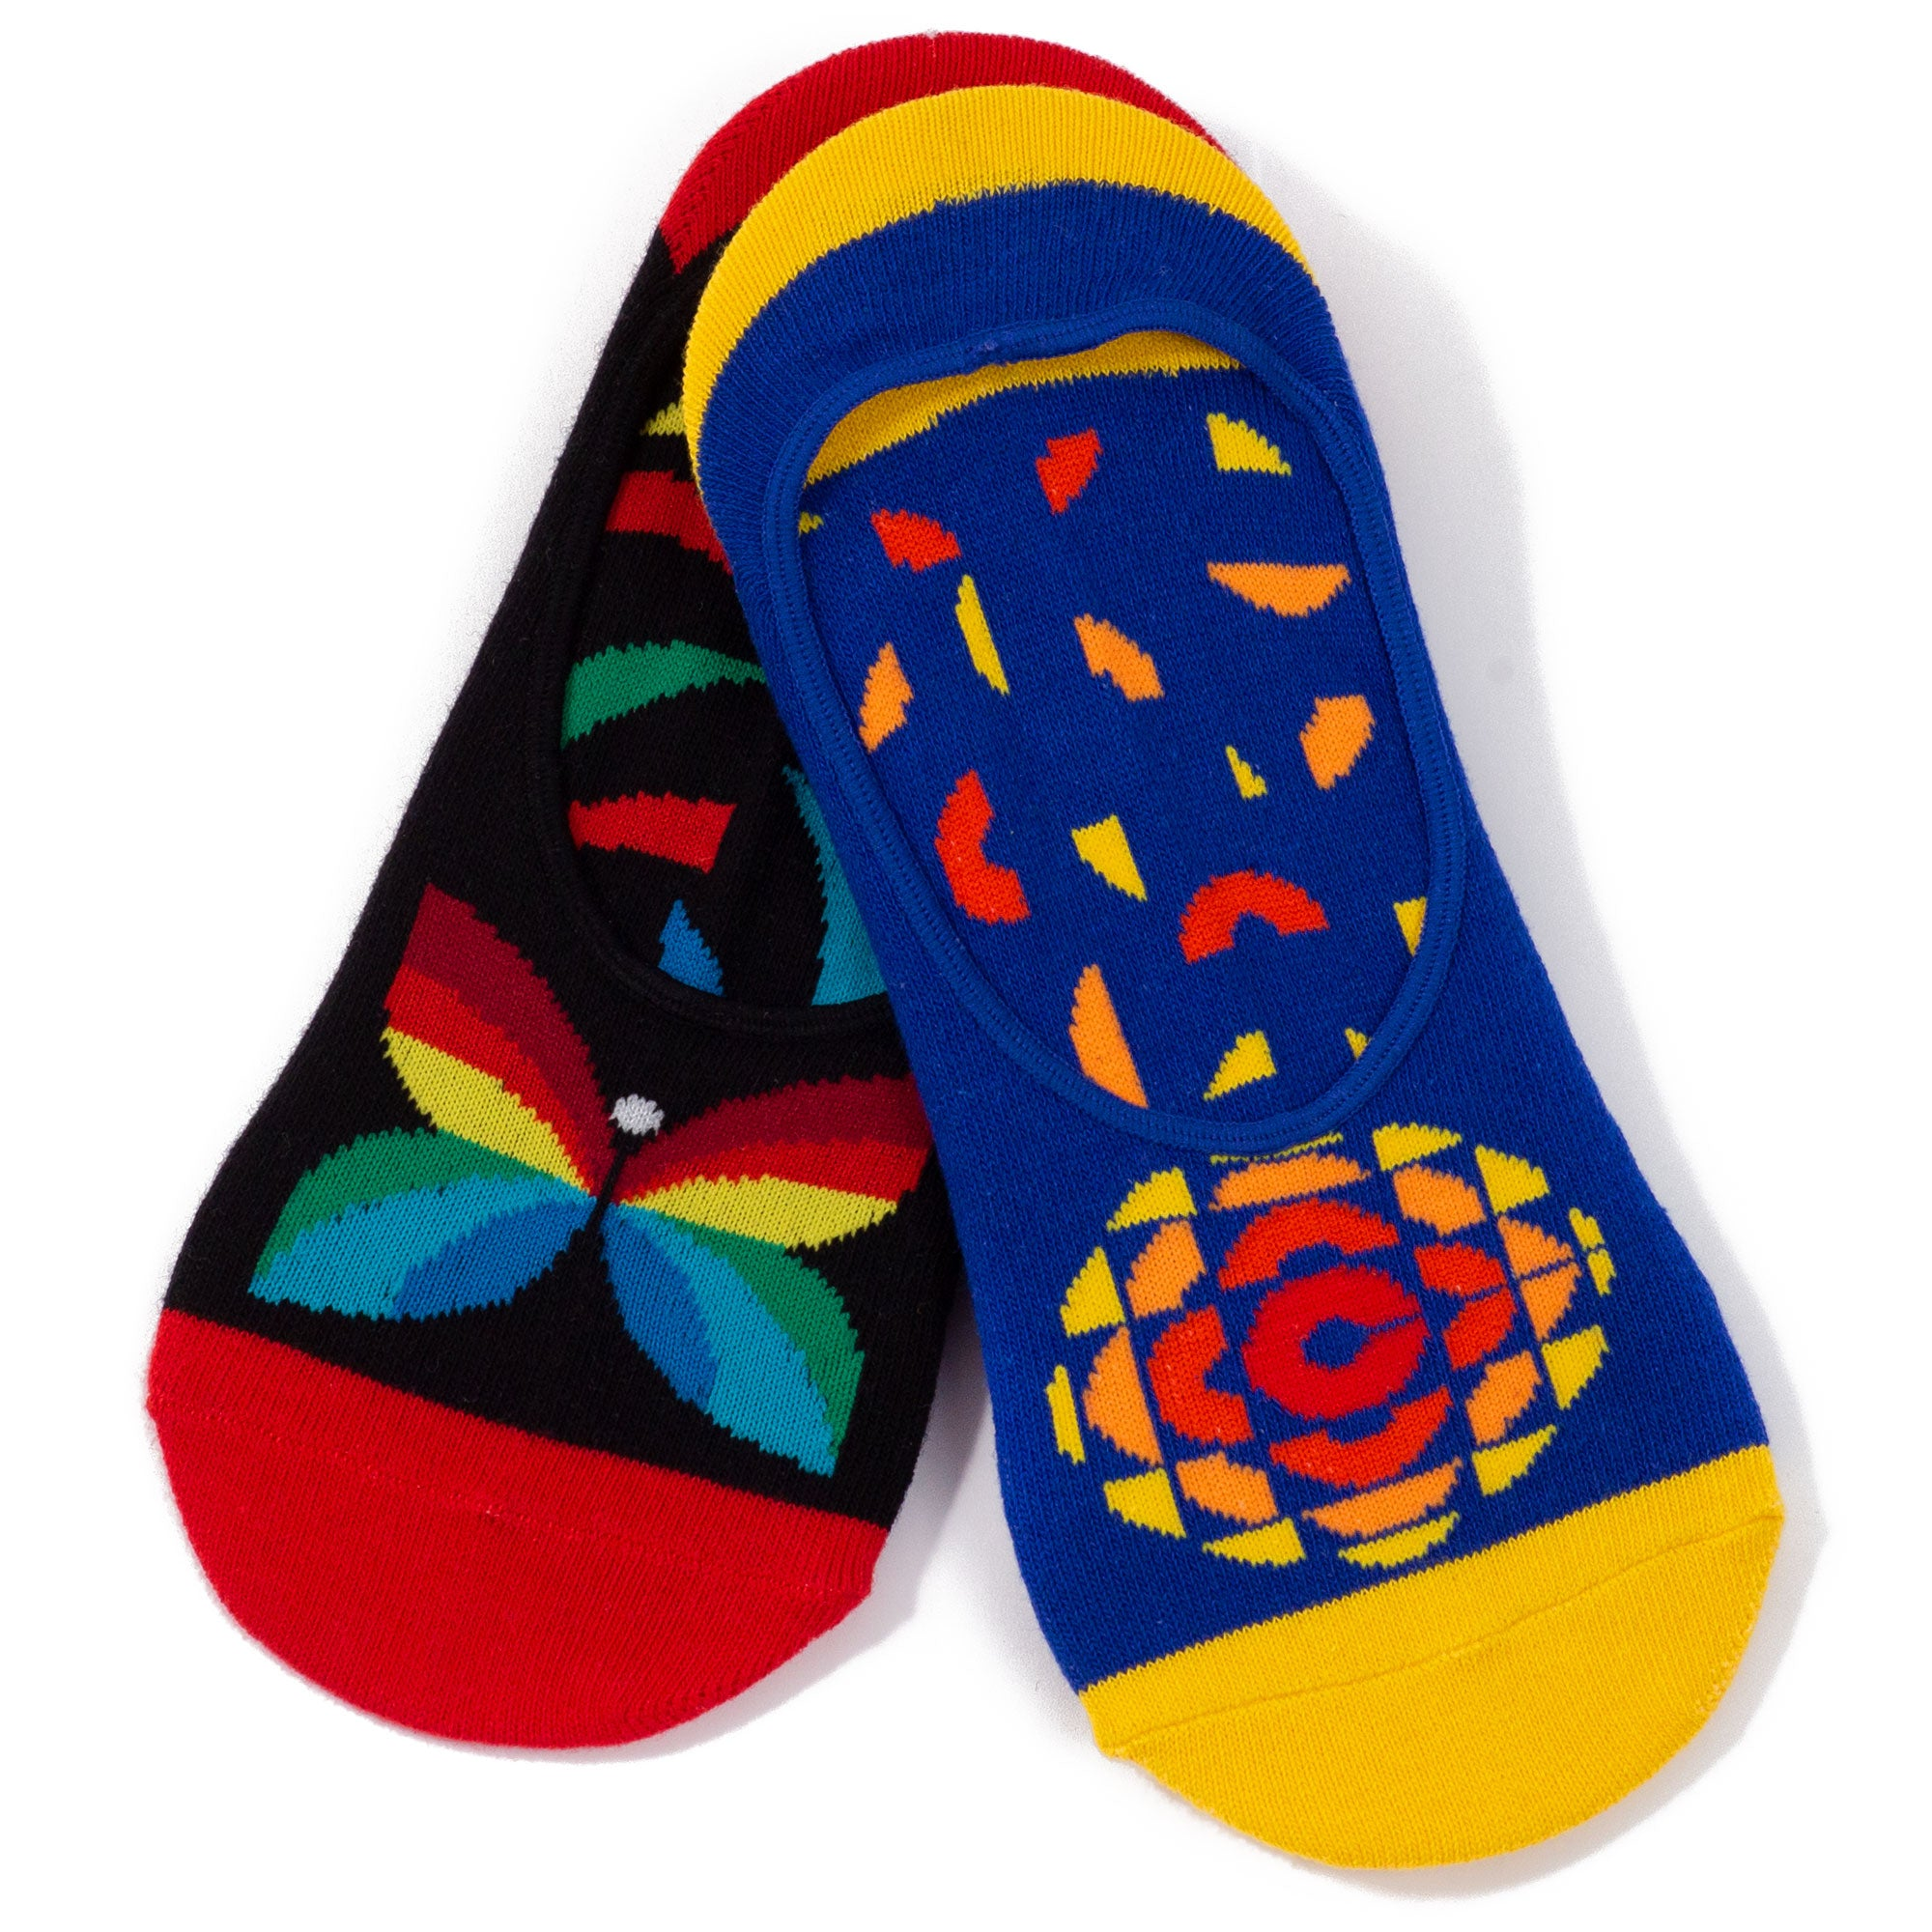 Womens CBC Retro Logos Socks (2 pairs)